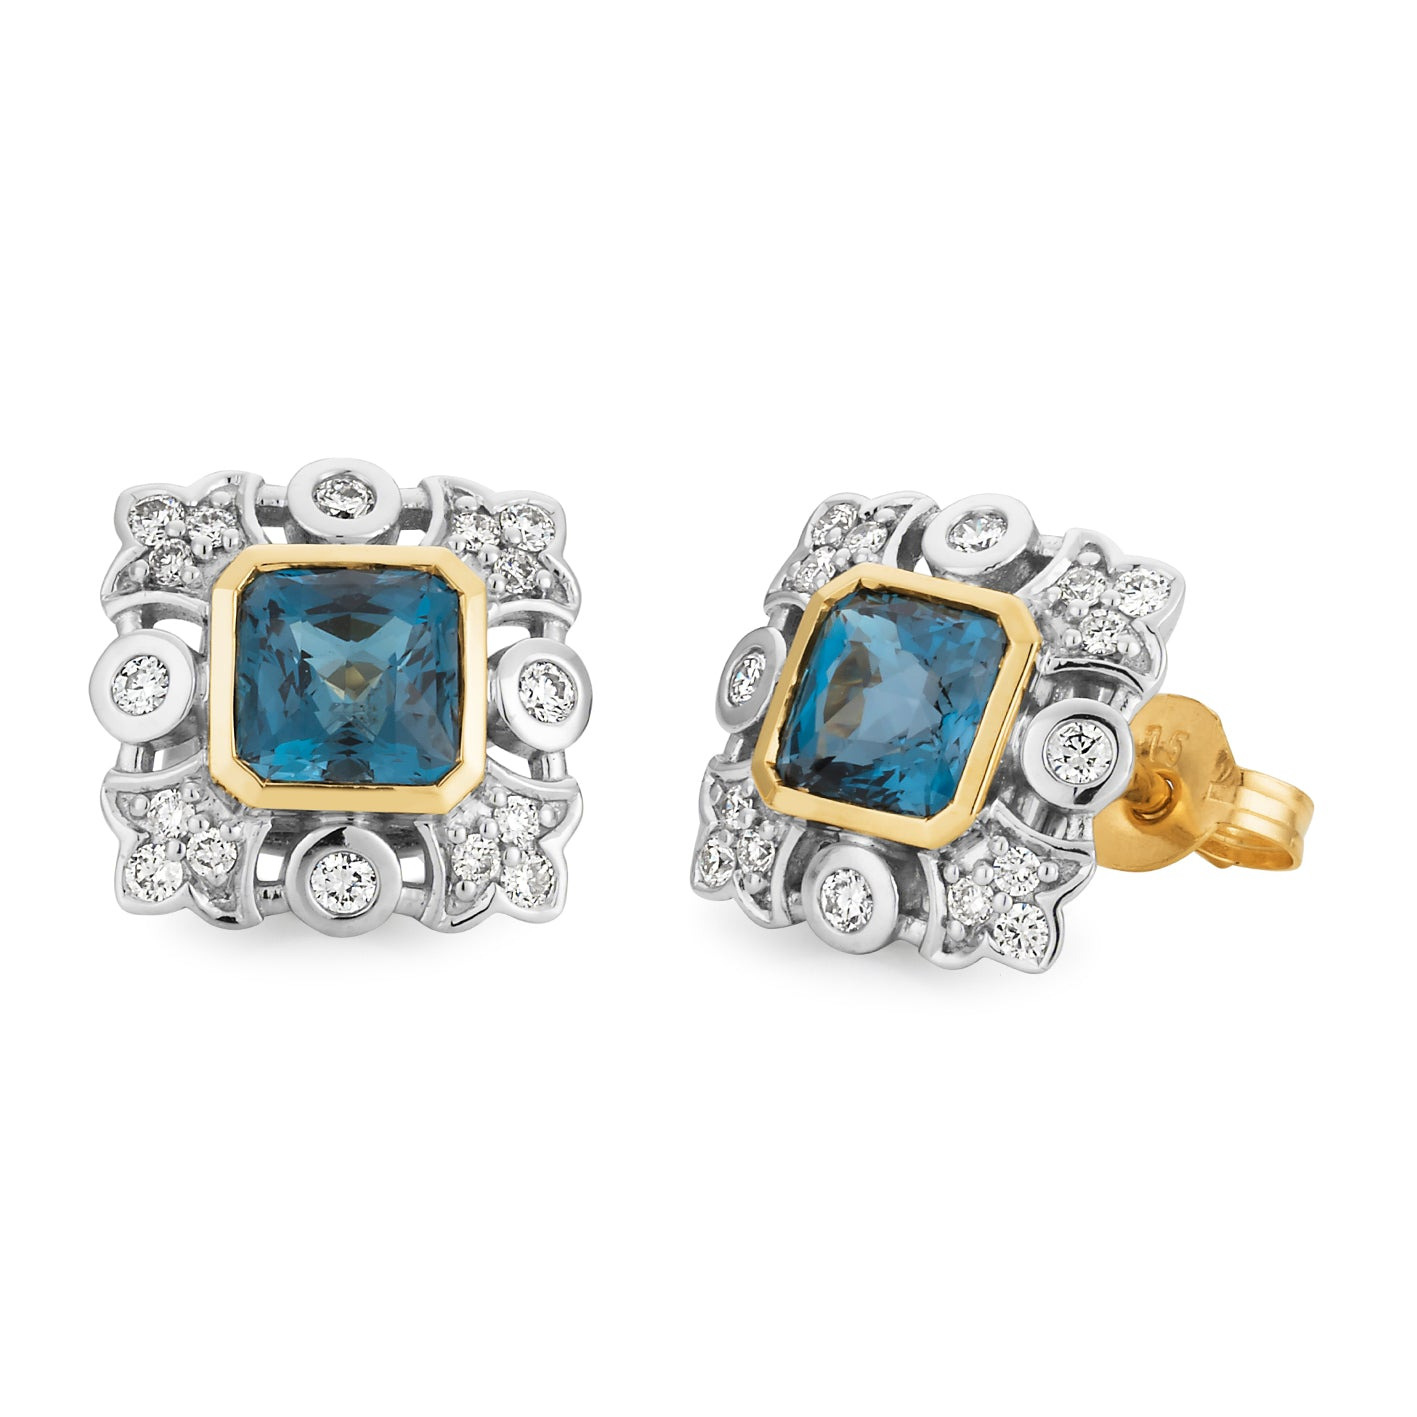 MMJ - London Blue Topaz & Diamond Earring